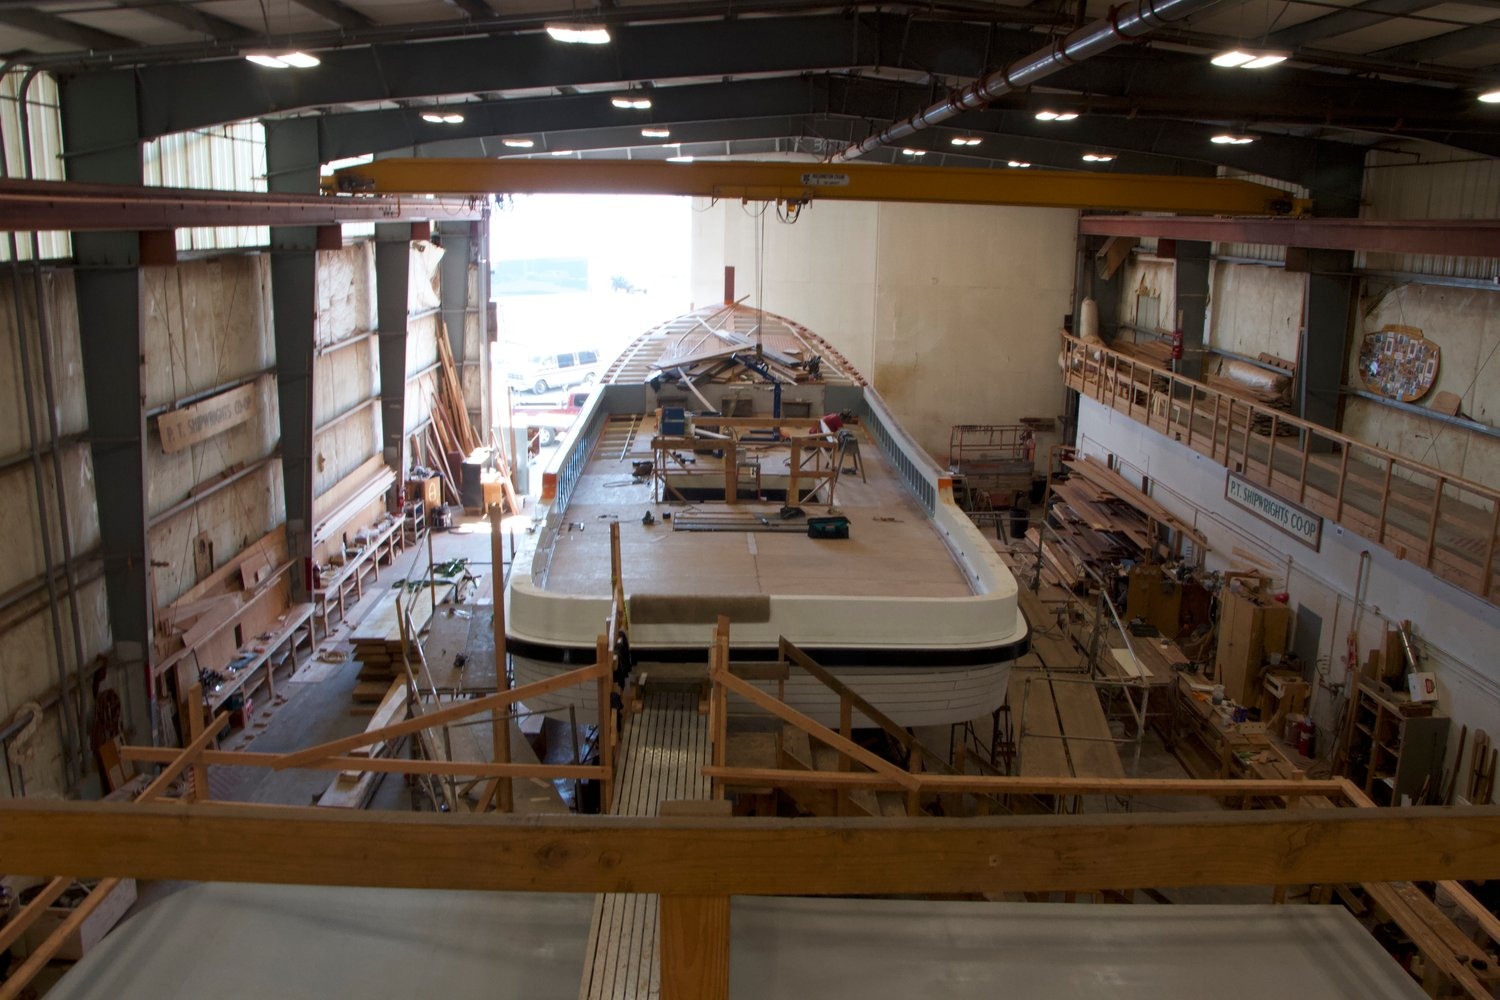 The Western Flyer, photographed from the stern as it undergoes repairs at the Port Townsend Shipwrights Co-Op.